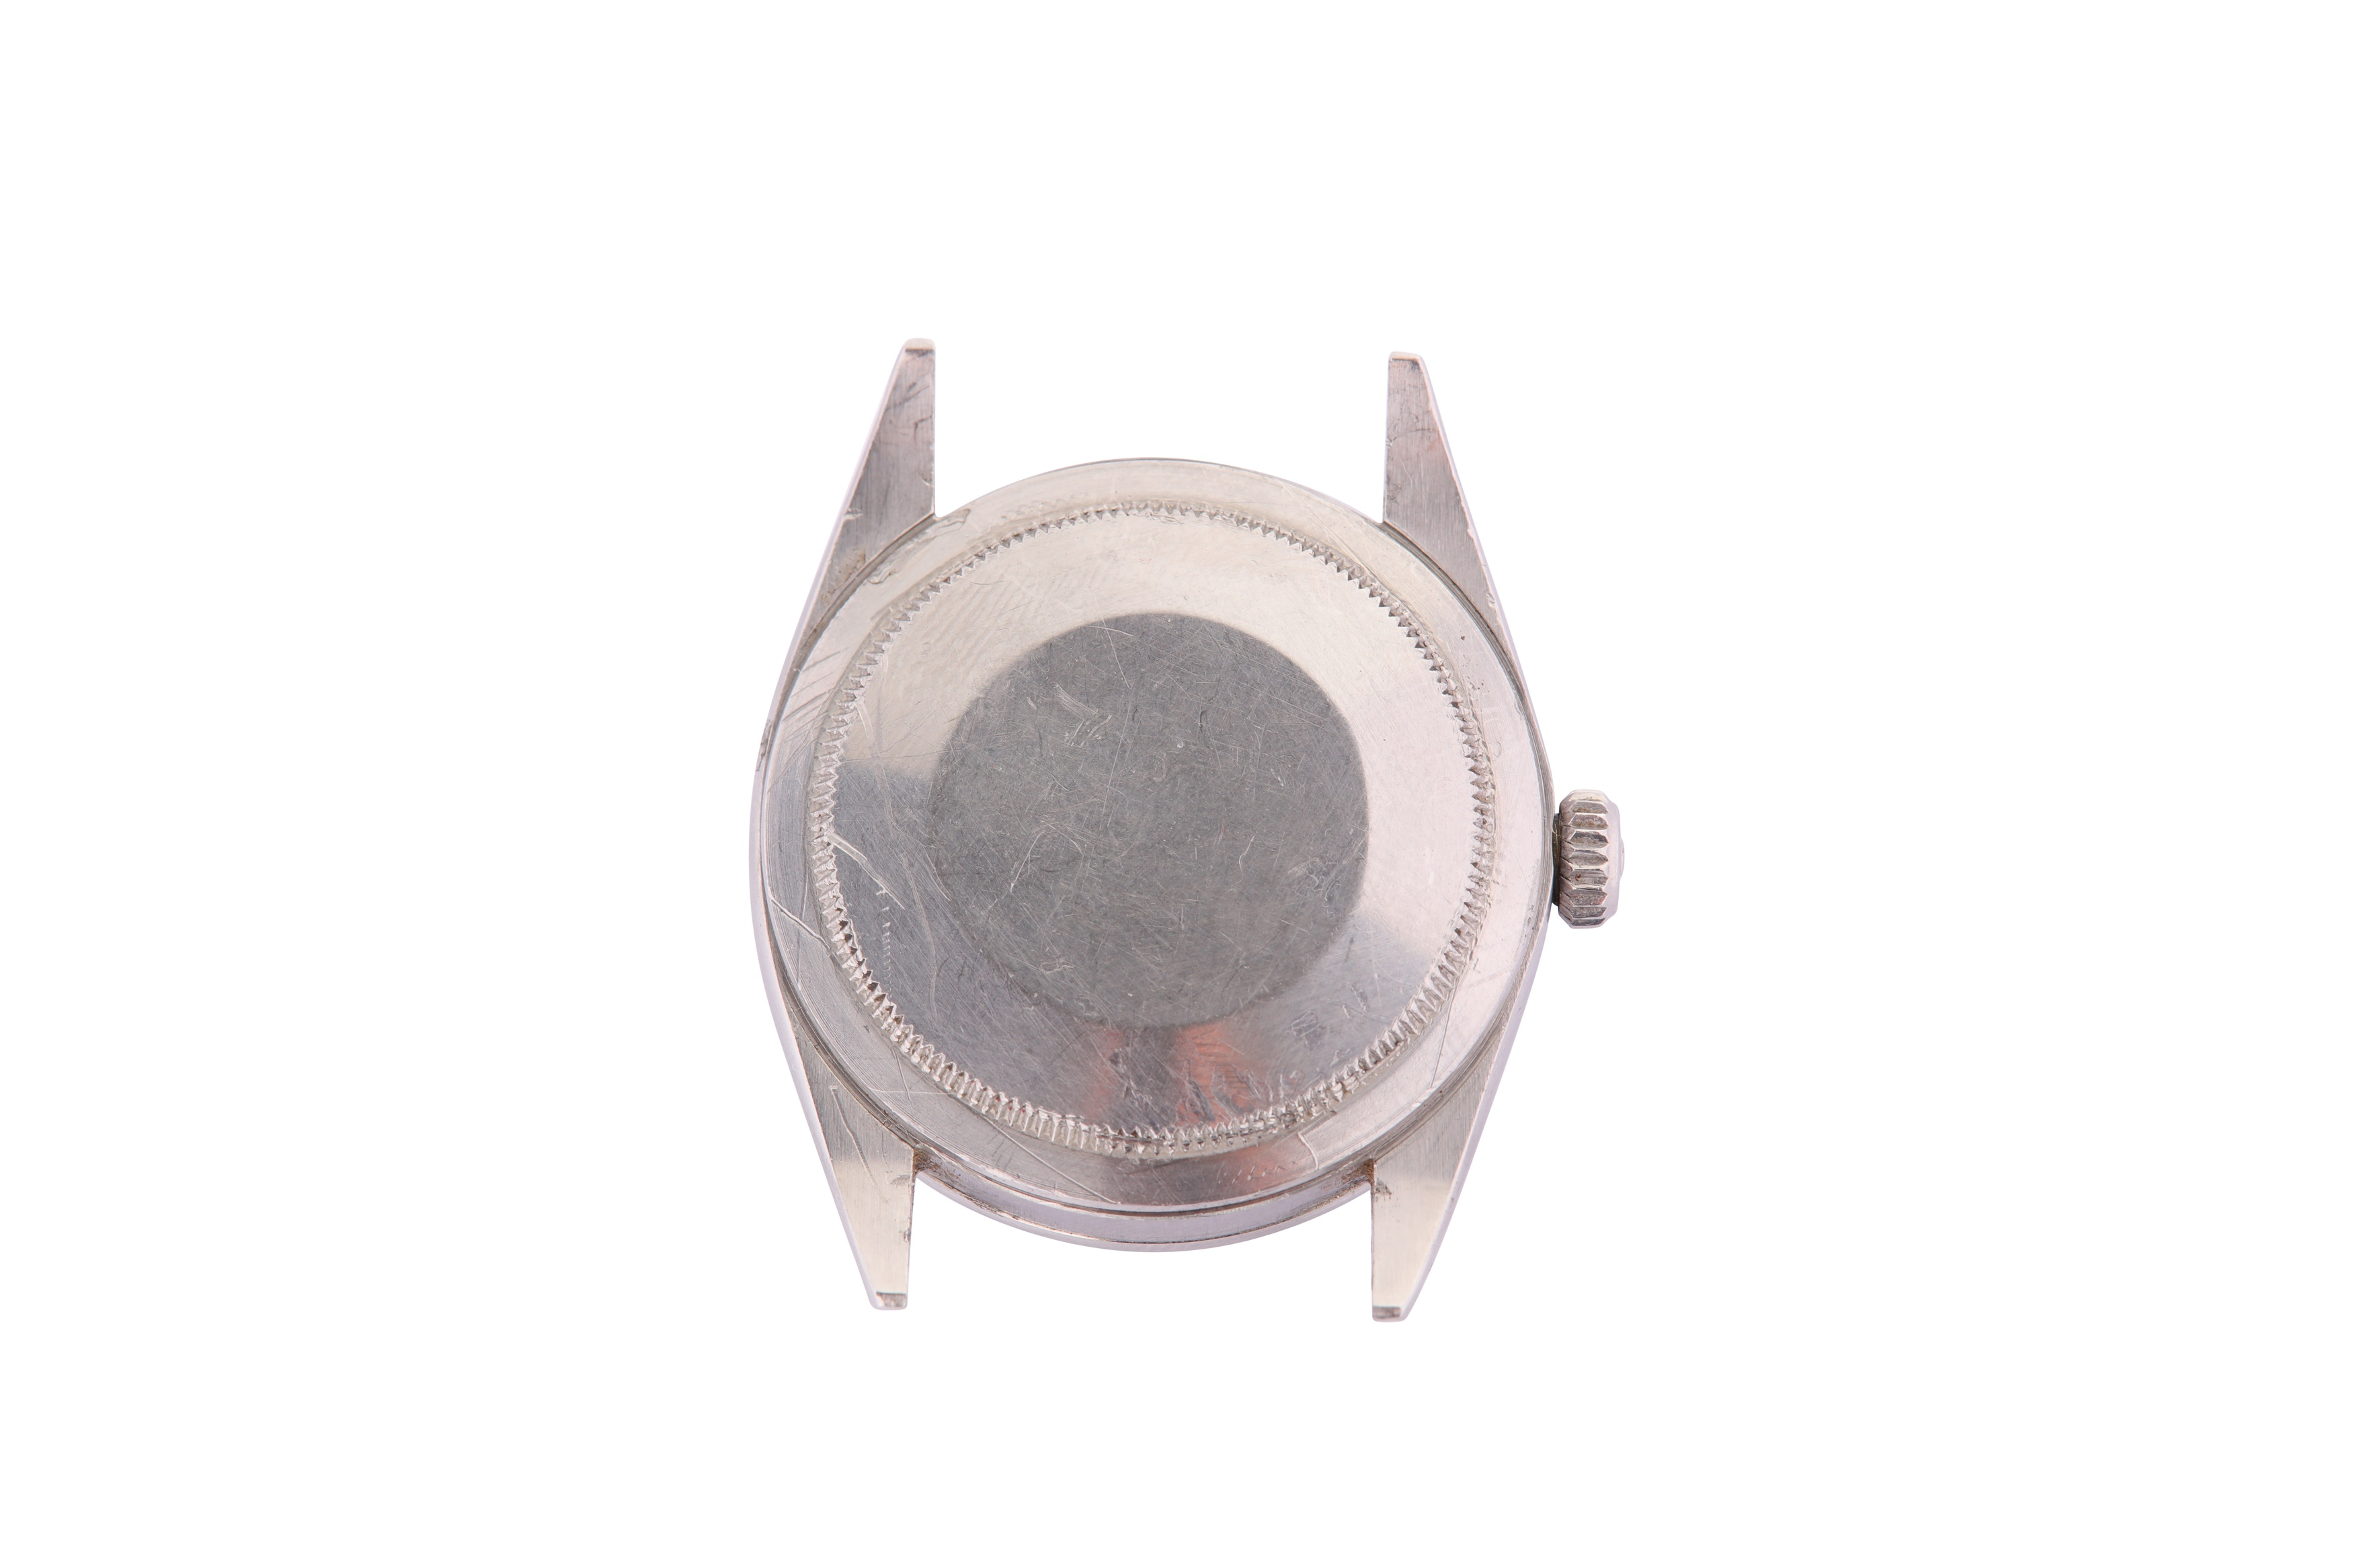 A RARE AND ATTRACTIVE MEN'S ROLEX STAINLESS STEEL AUTOMATIC WRISTWATCH - Image 6 of 9